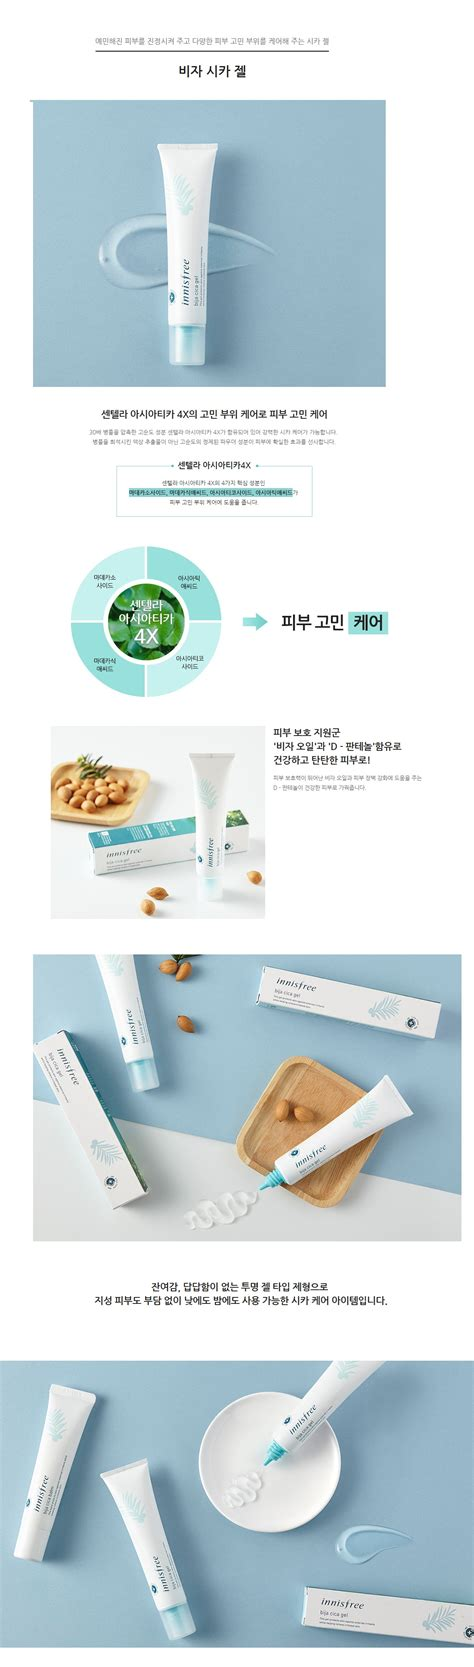 Innisfree Bija Cica Gel innisfree bija cica gel seoul next by you malaysia